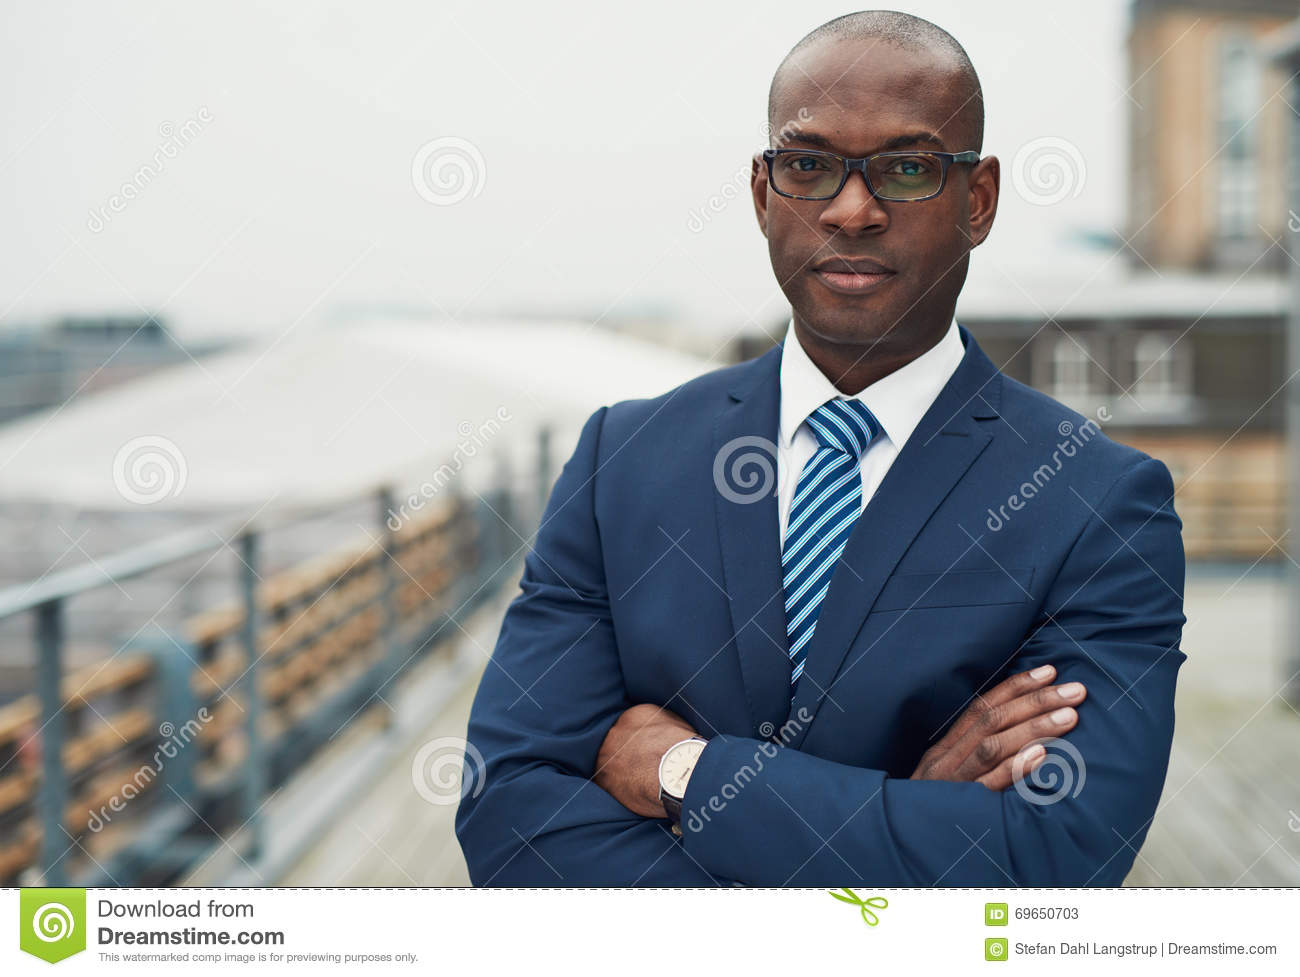 7 313 755 Man Photos Free Royalty Free Stock Photos From Dreamstime See more of man photos on facebook. dreamstime com